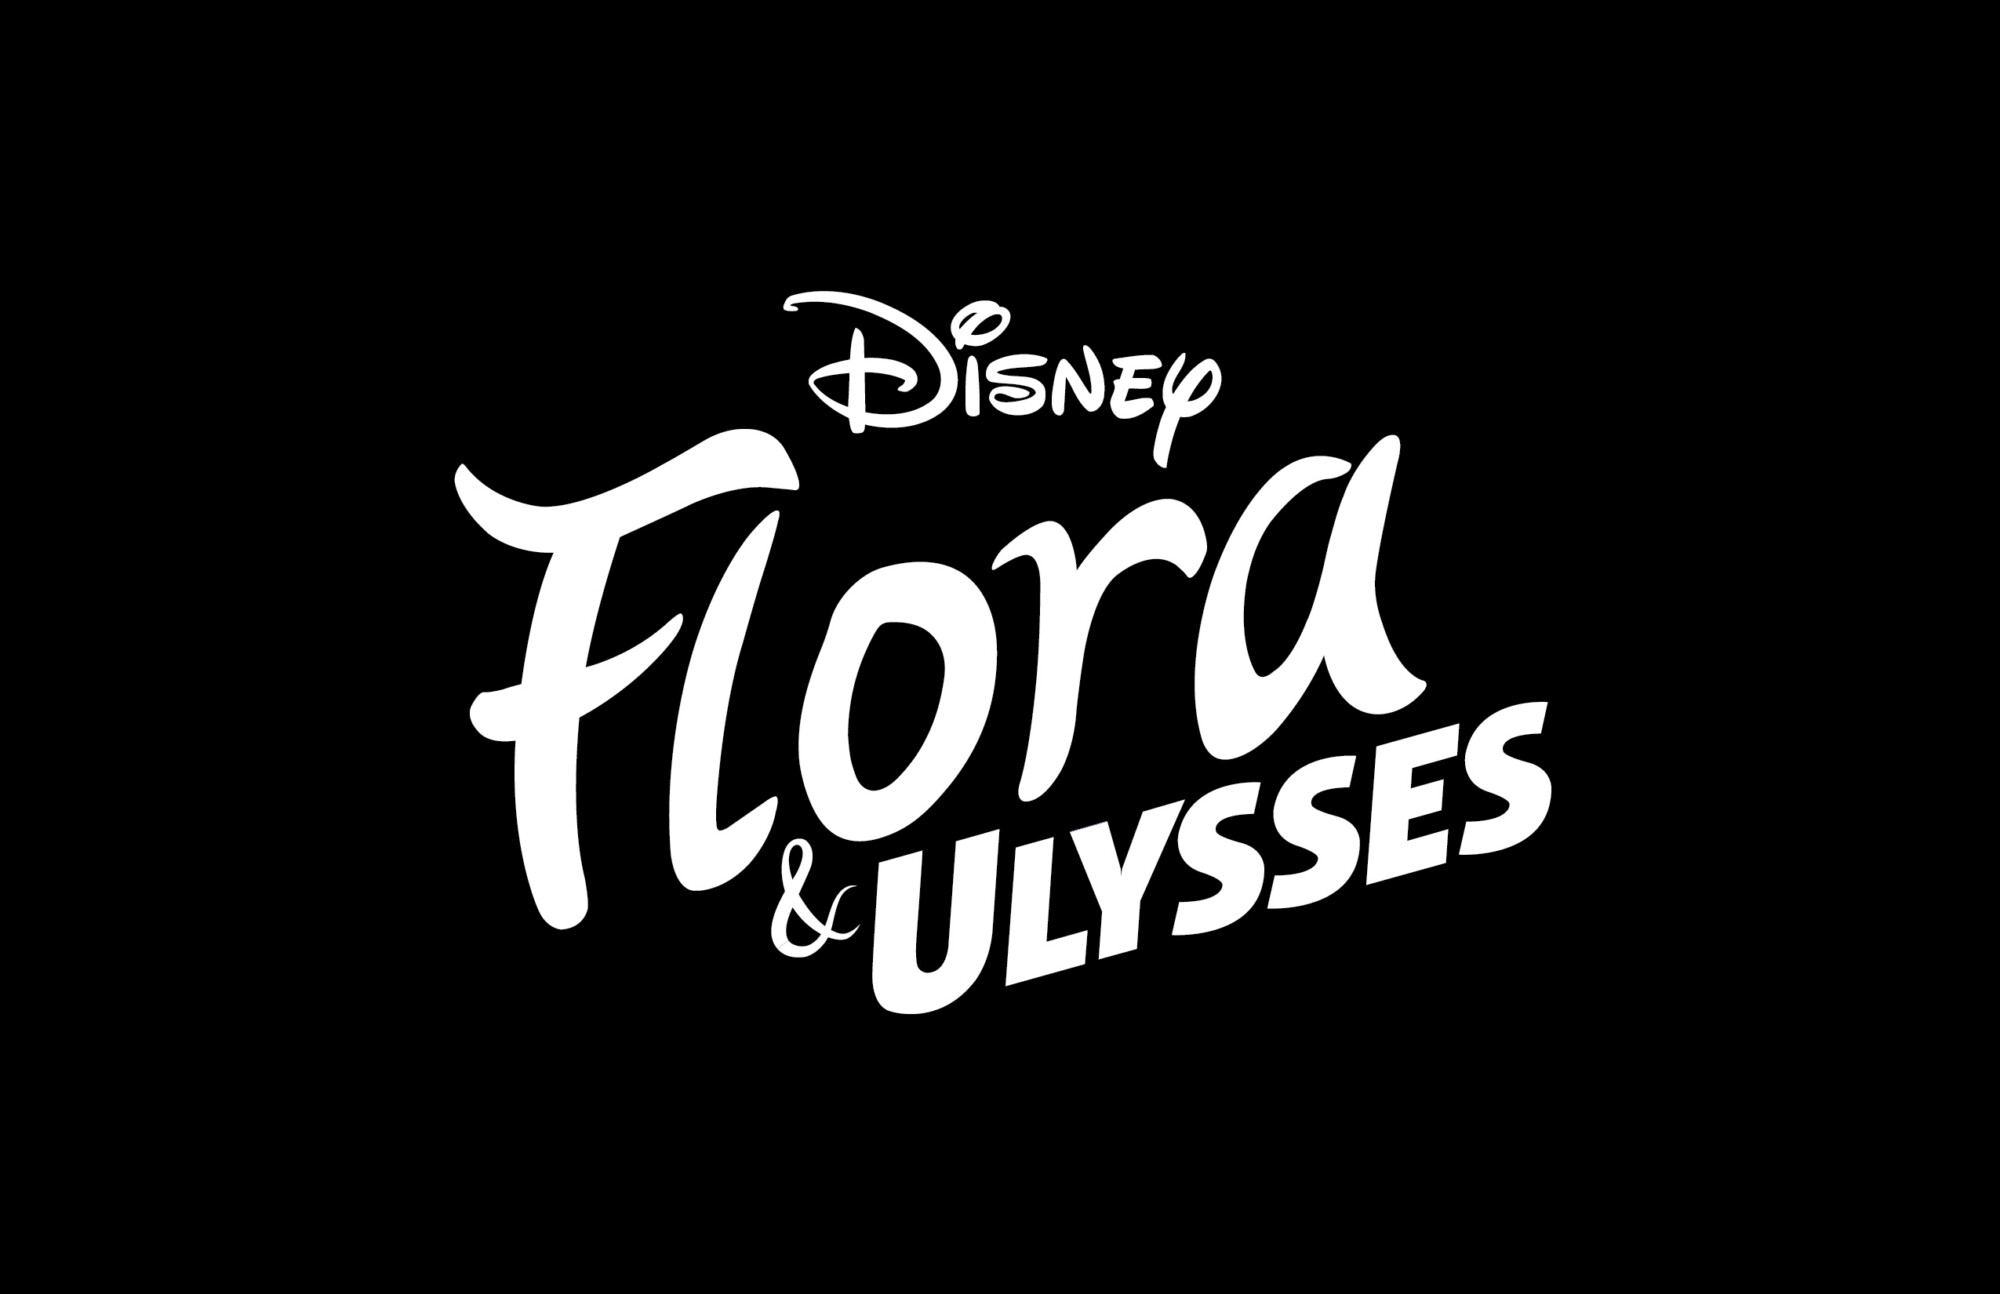 """DISNEY'S COMEDY-ADVENTURE """"FLORA & ULYSSES"""" PREMIERING FRIDAY, FEBRUARY 19 EXCLUSIVELY ON DISNEY+ - The Main Street Mouse"""